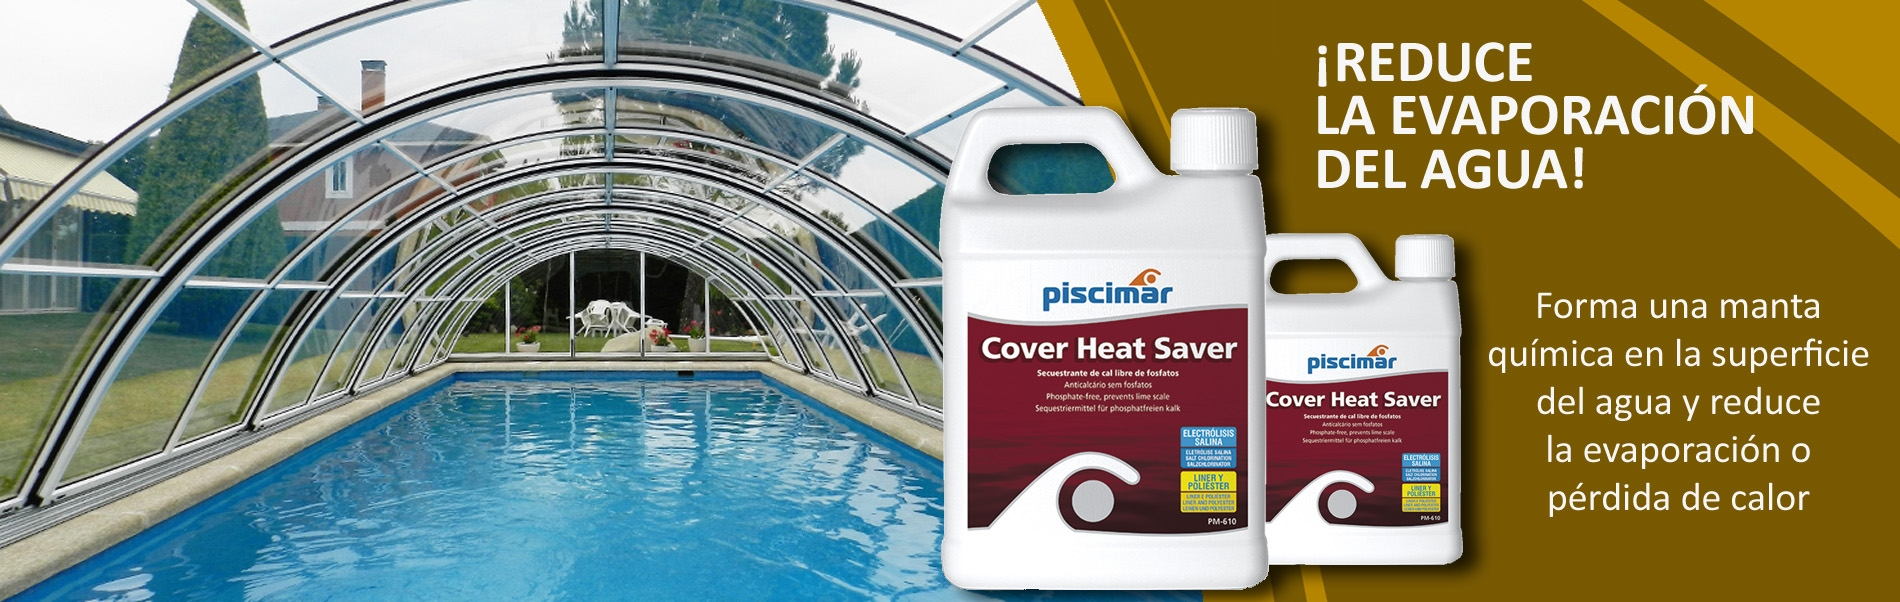 cover heat saver